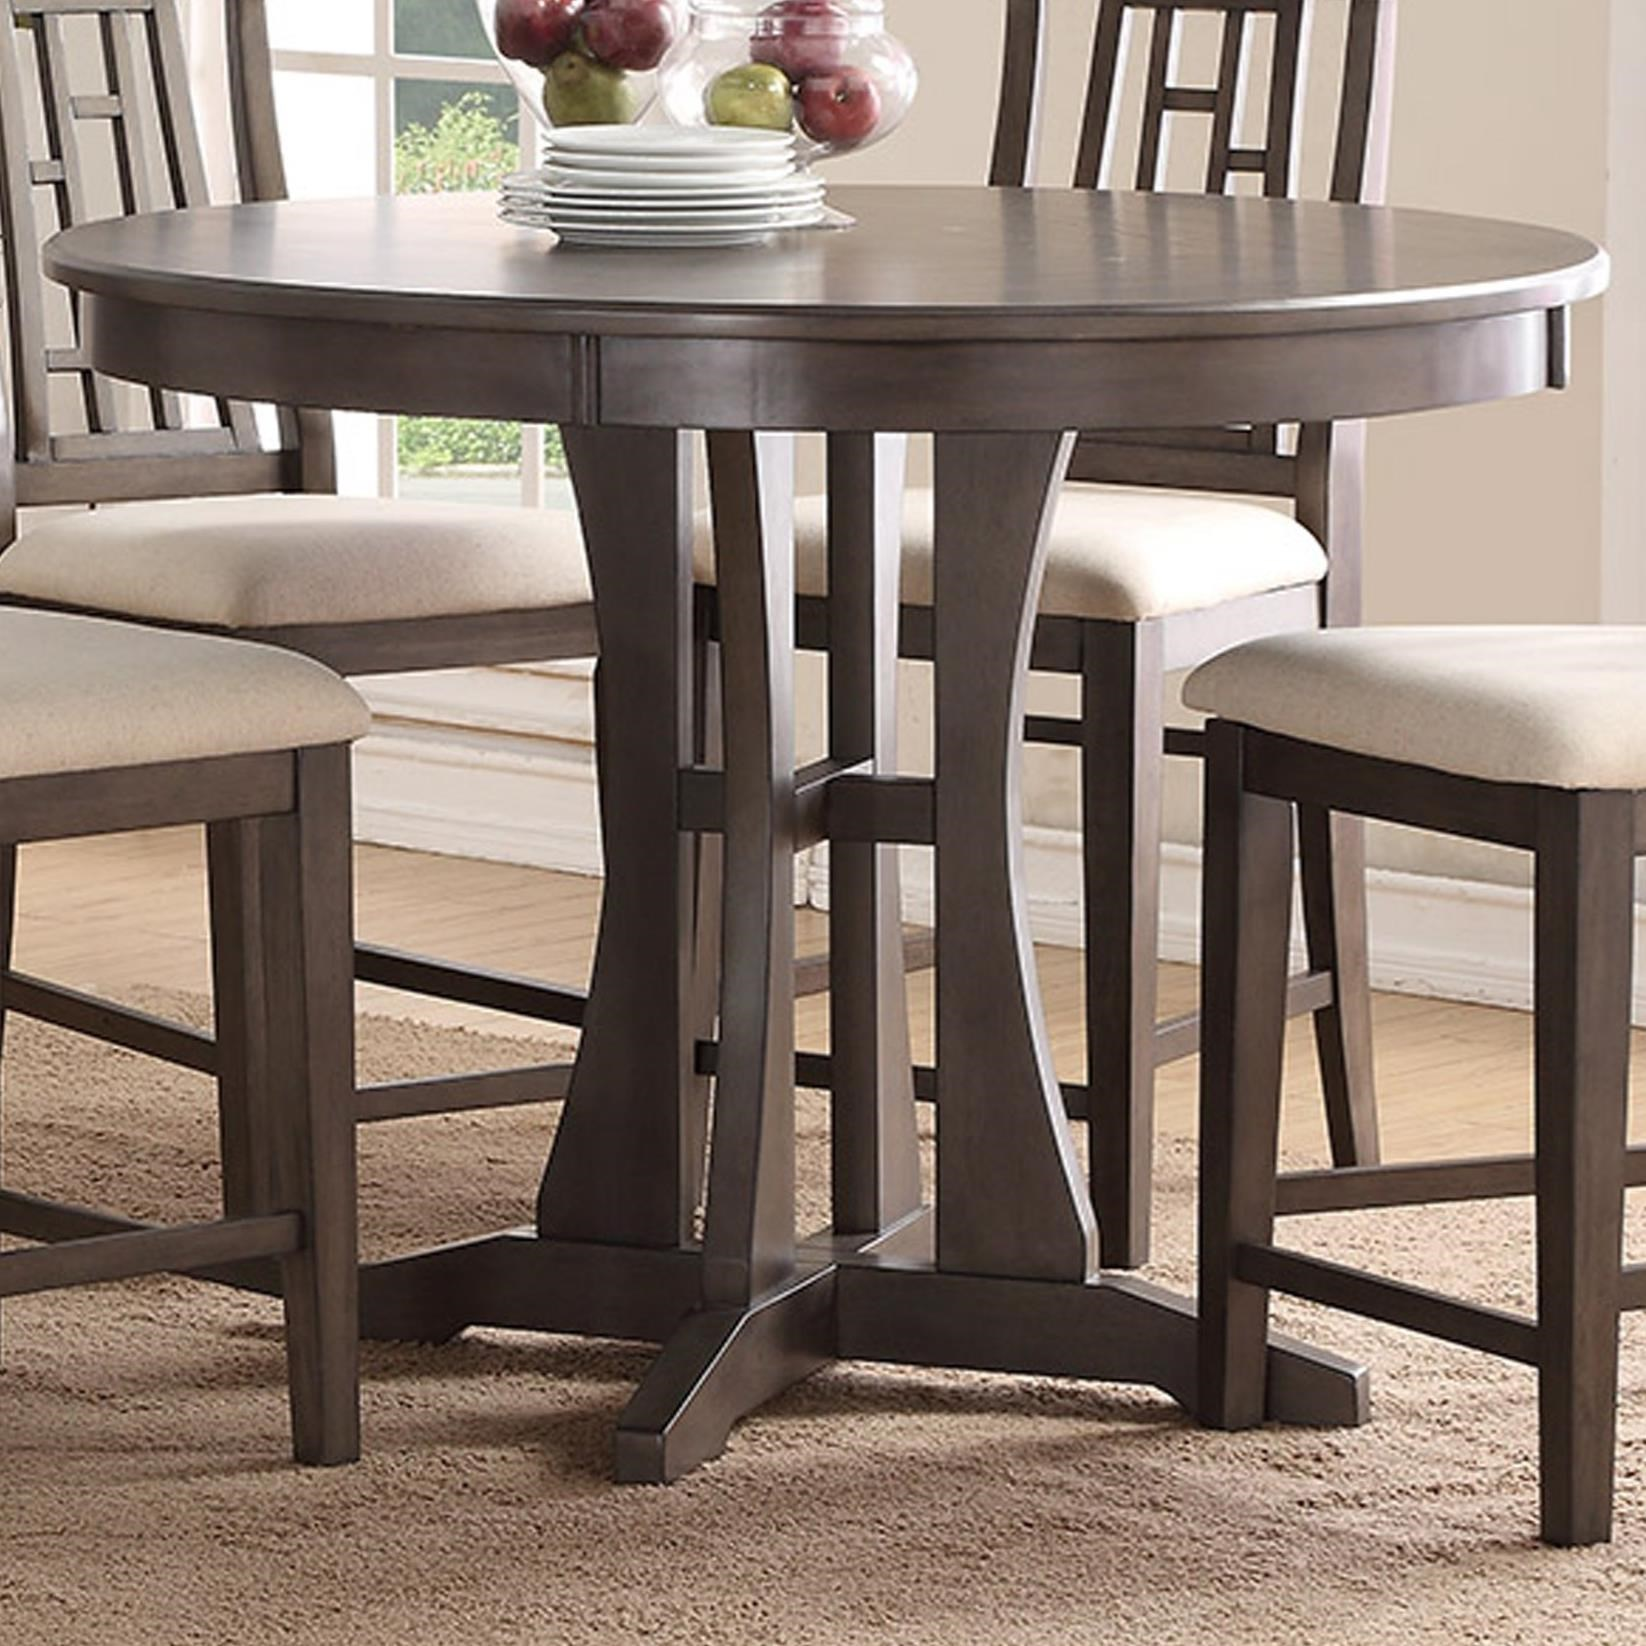 Bernards Modesto 48 Inch Round Counter Dining Table with Pedestal